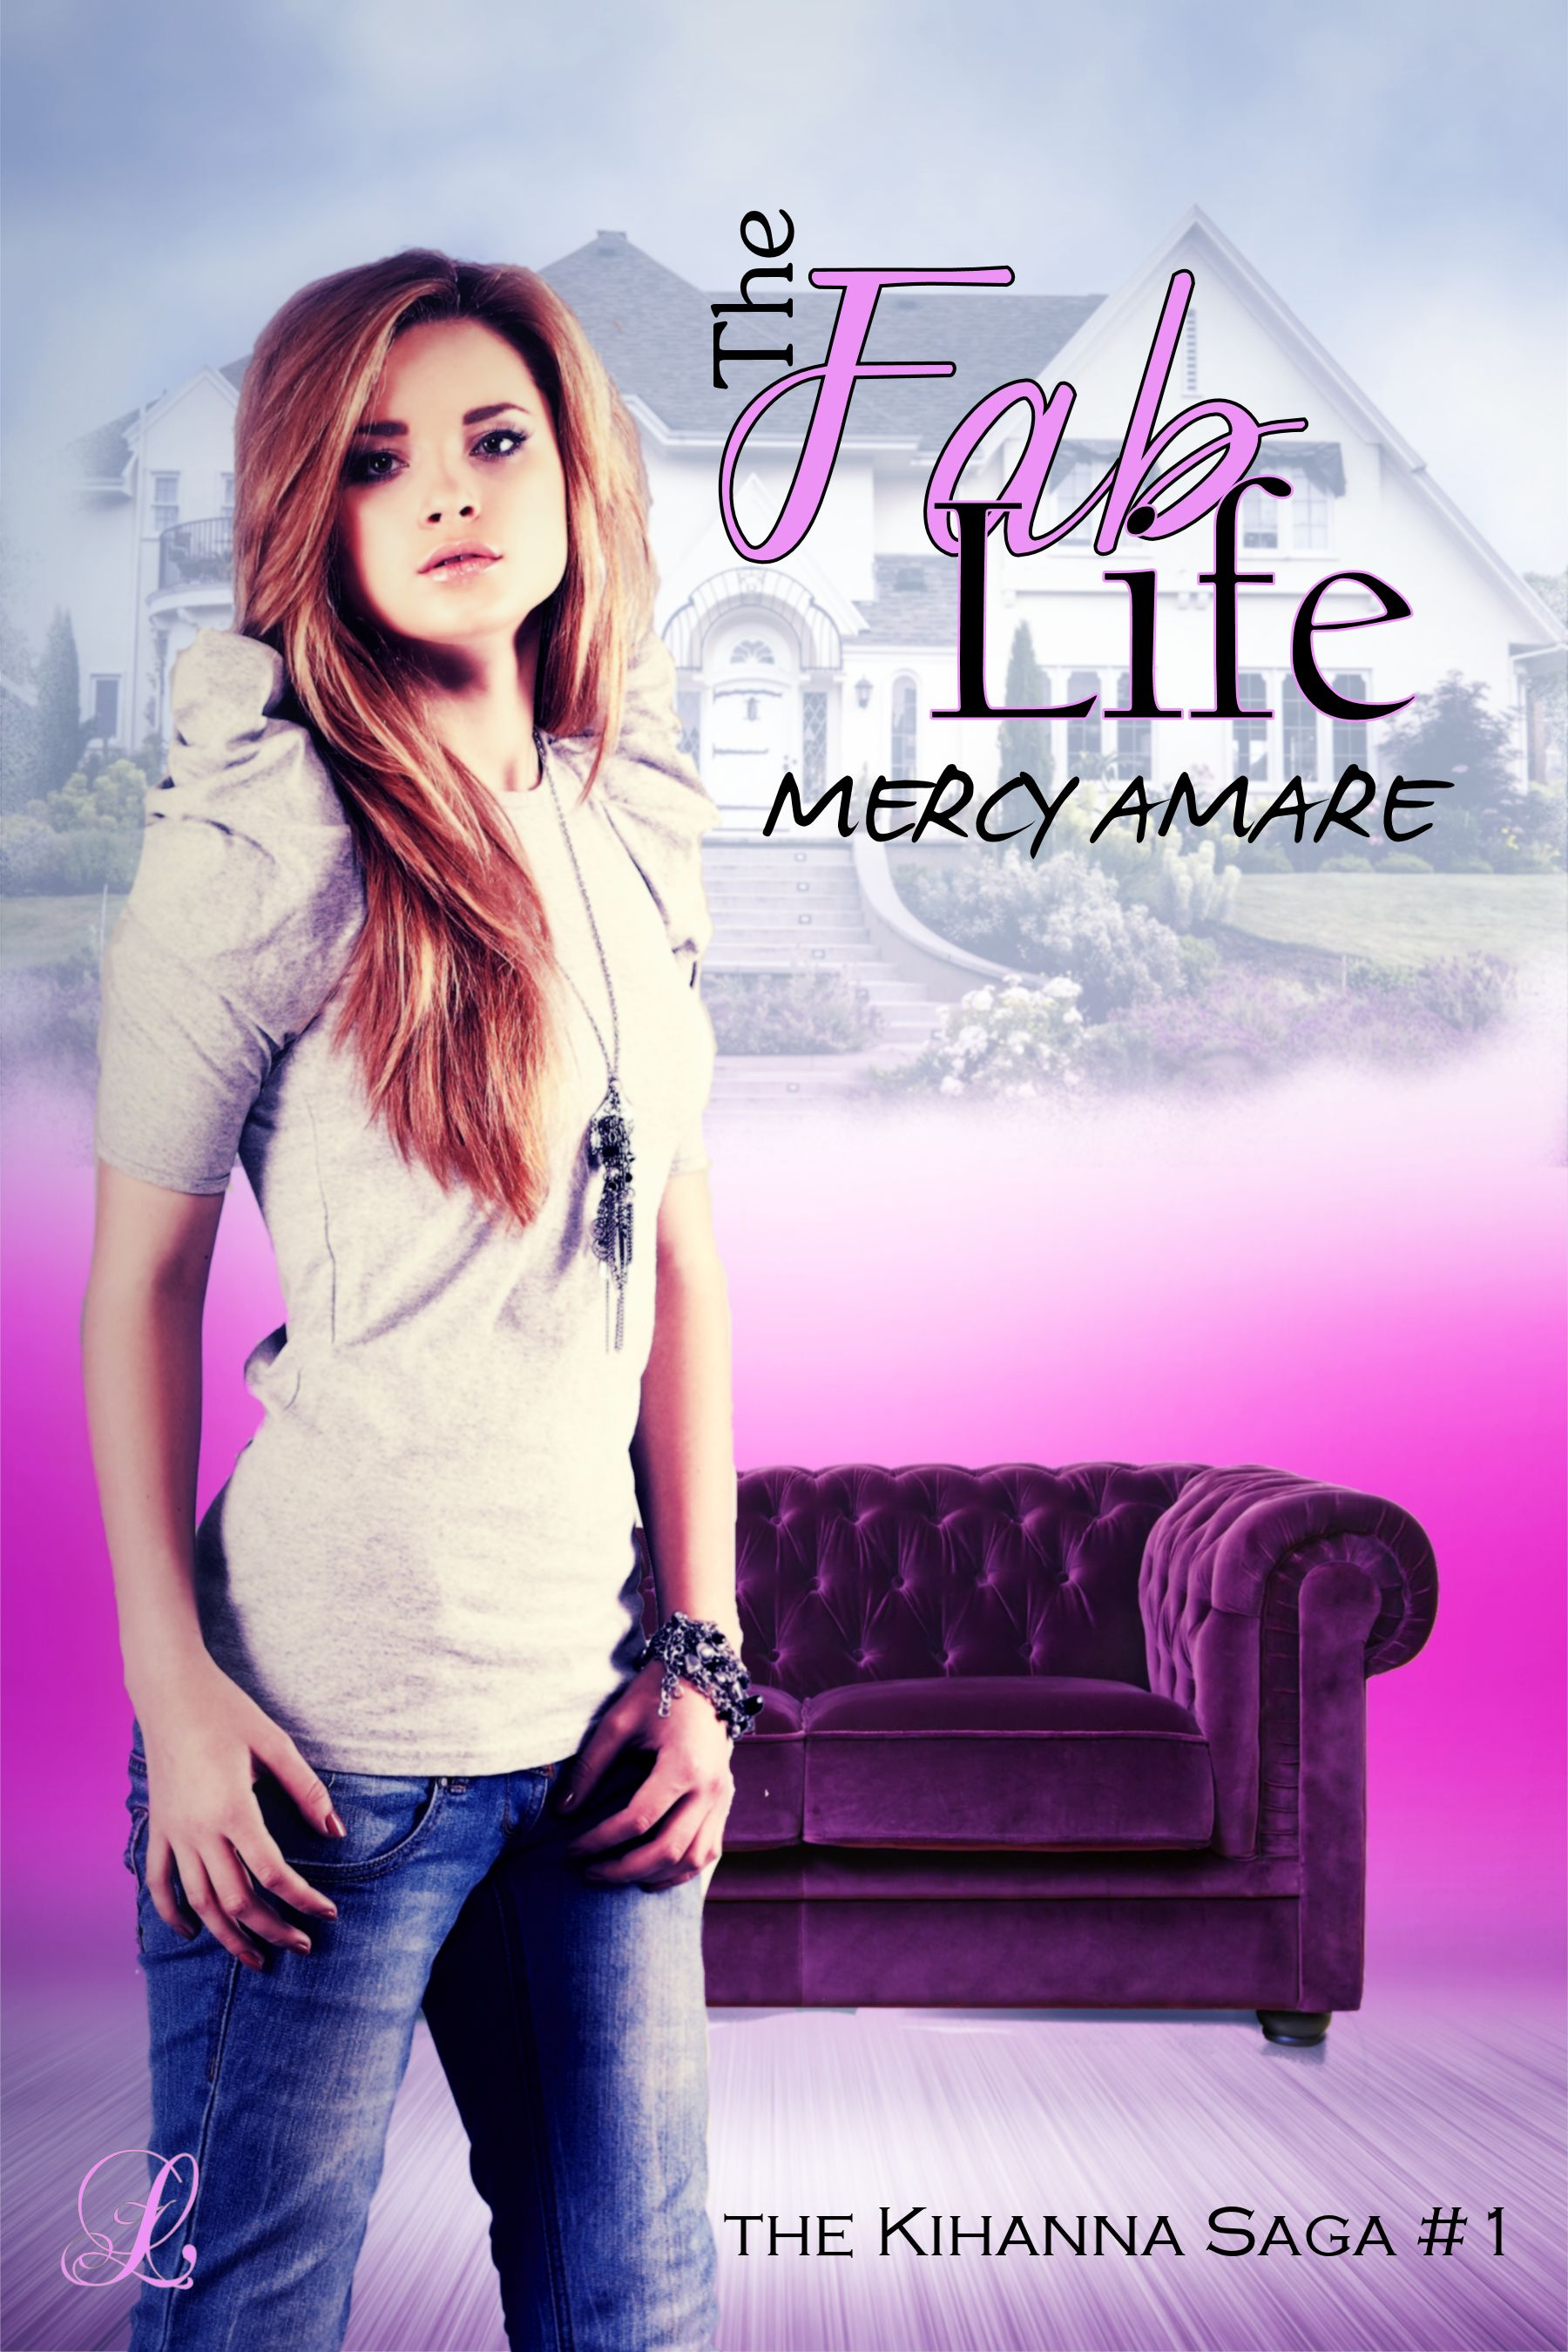 Blog Tour Review and Giveaway: The Fab Life (The Kihanna Saga #1) by Mercy Amare